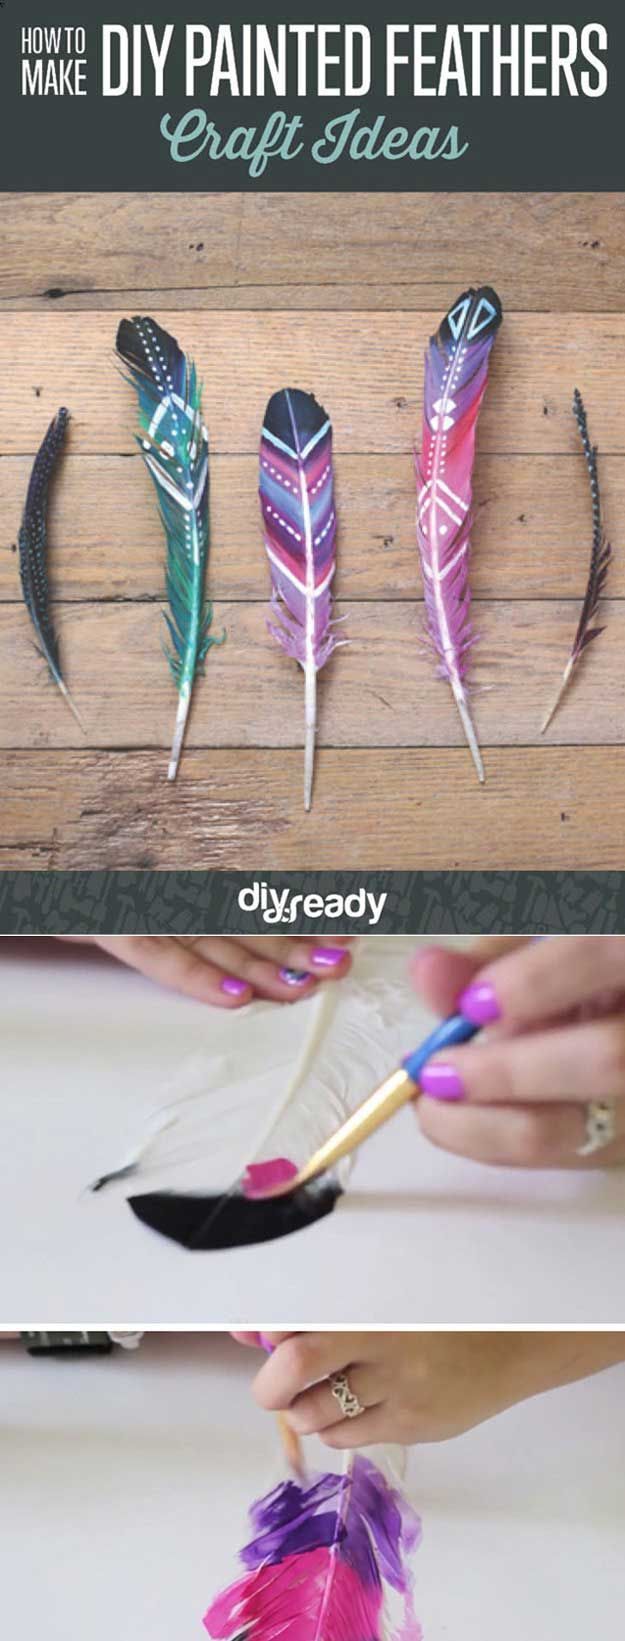 DIY Painted Feathers and other cool art ideas